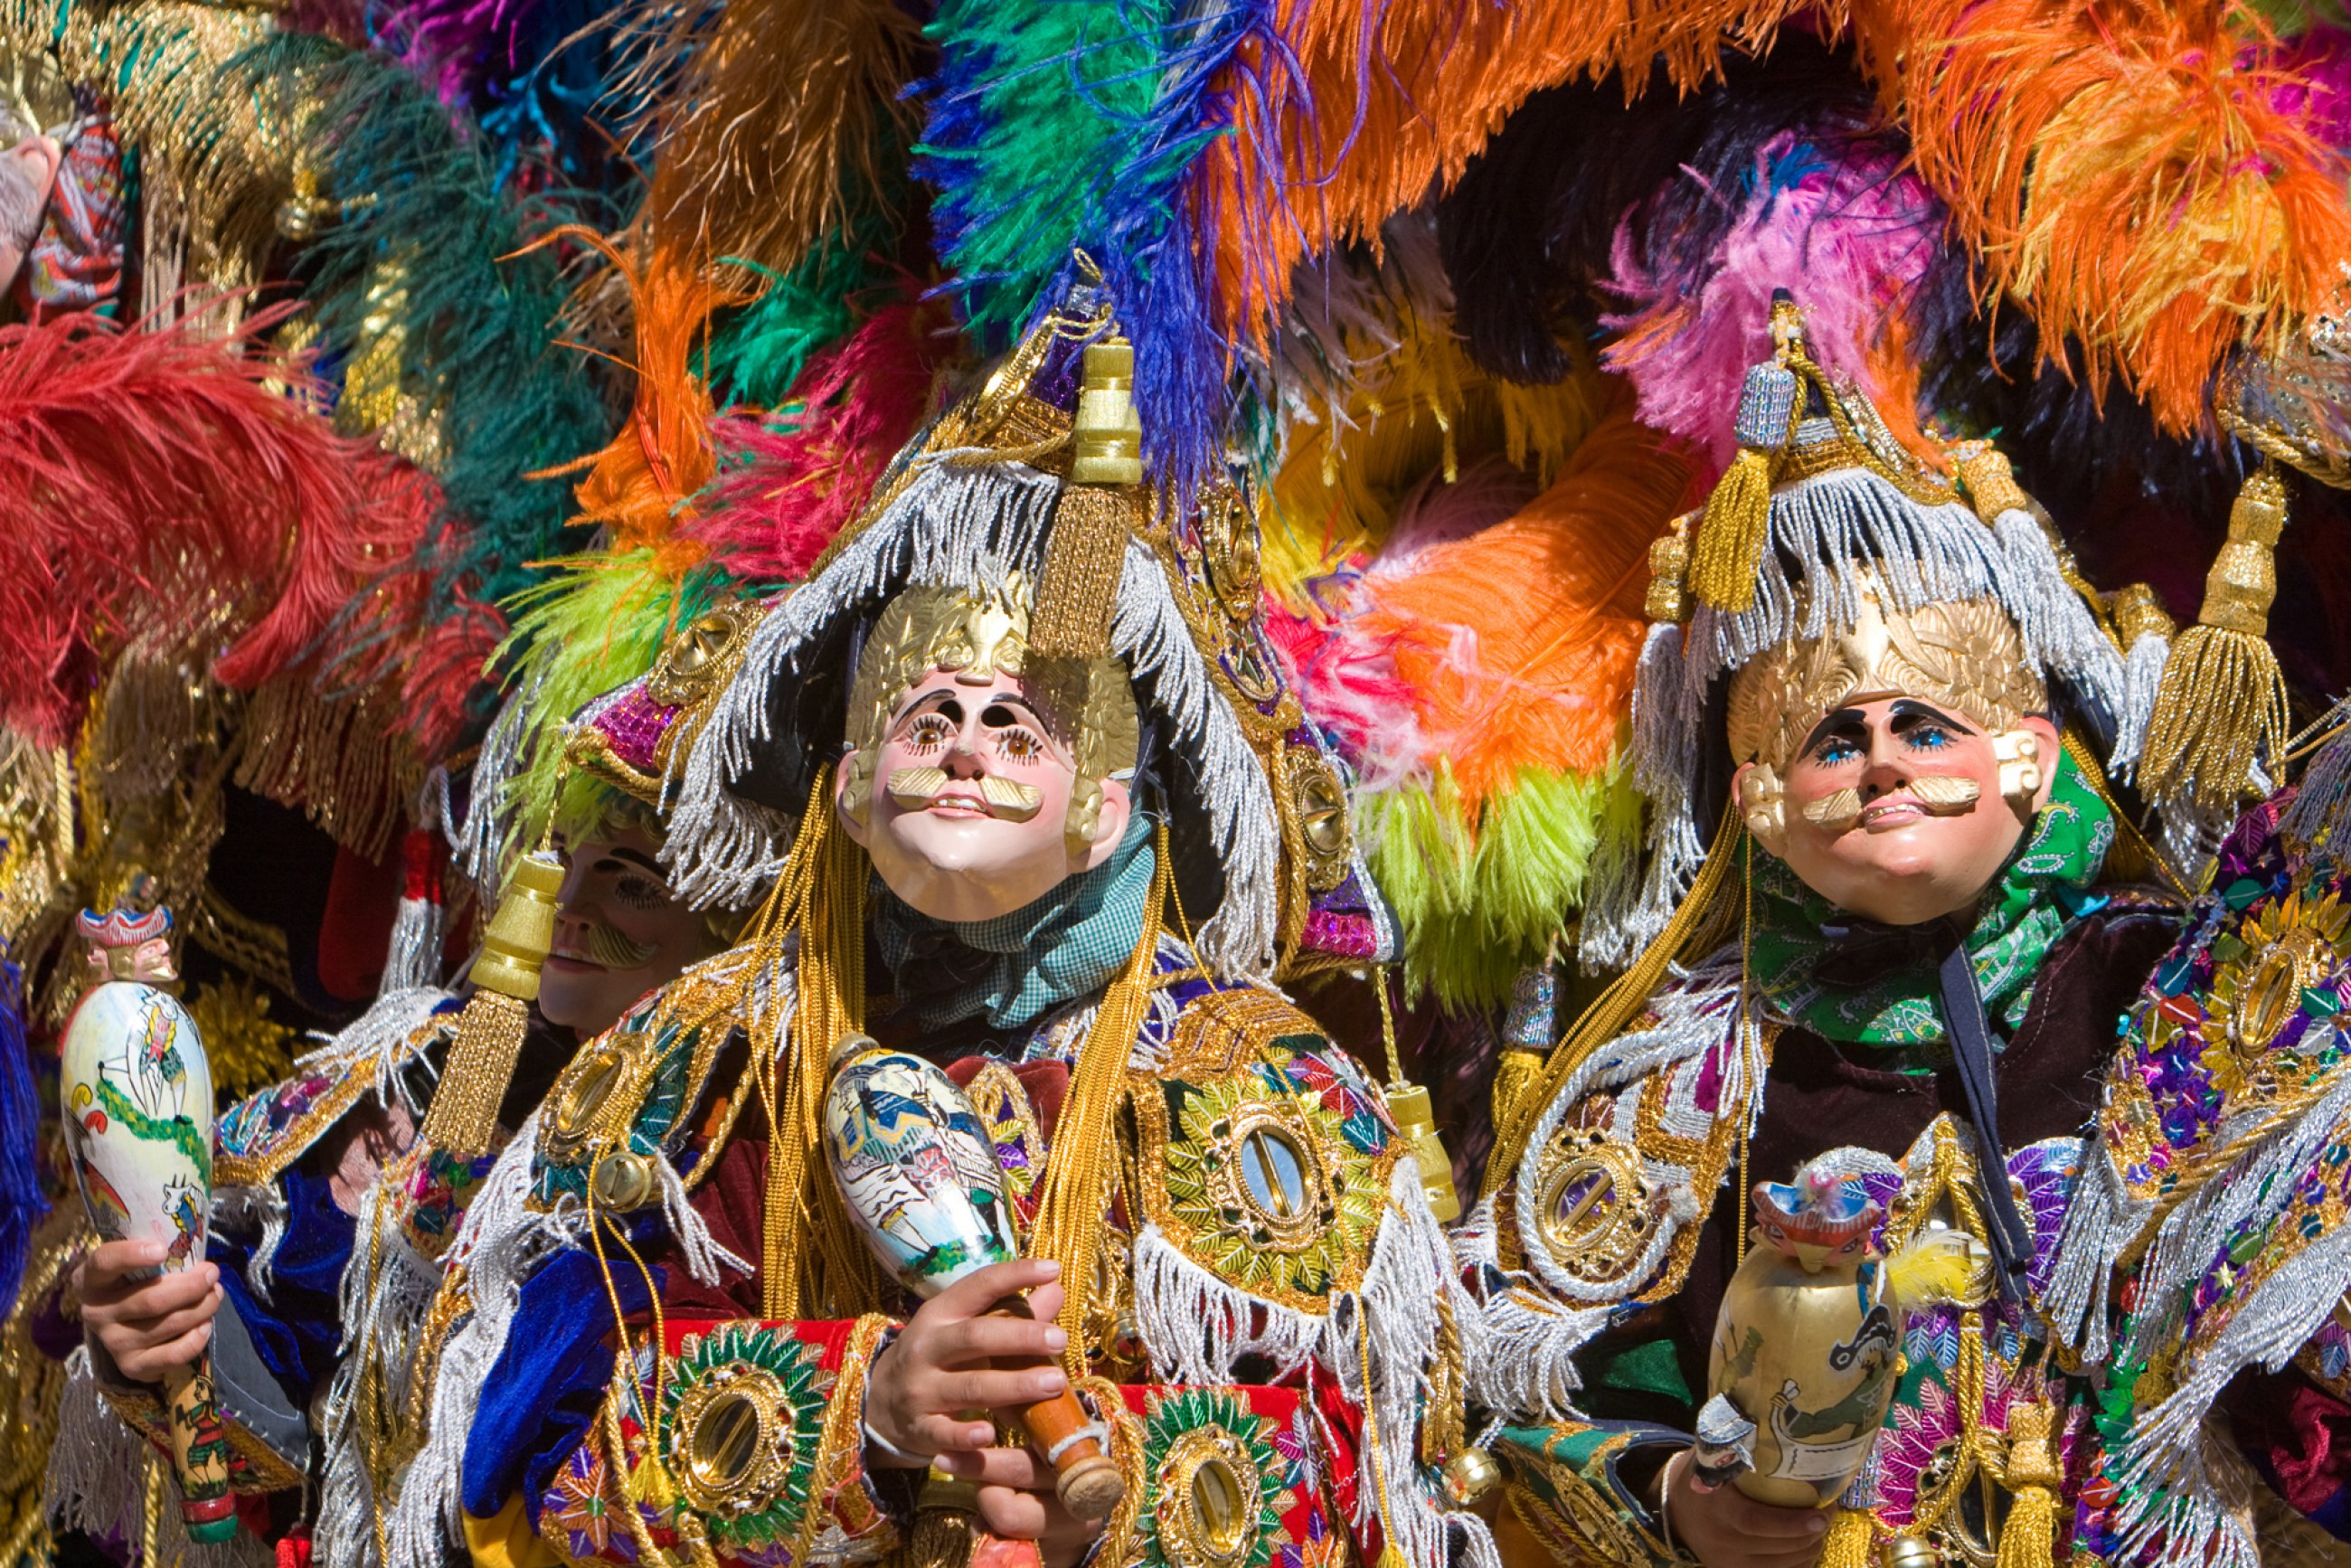 https://bubo.sk/uploads/galleries/7338/guatemala-the-locals-of-small-highland-town-of-chichicastenango-dress-up-to-celebrate-the-festa-of-san-tomas.jpg